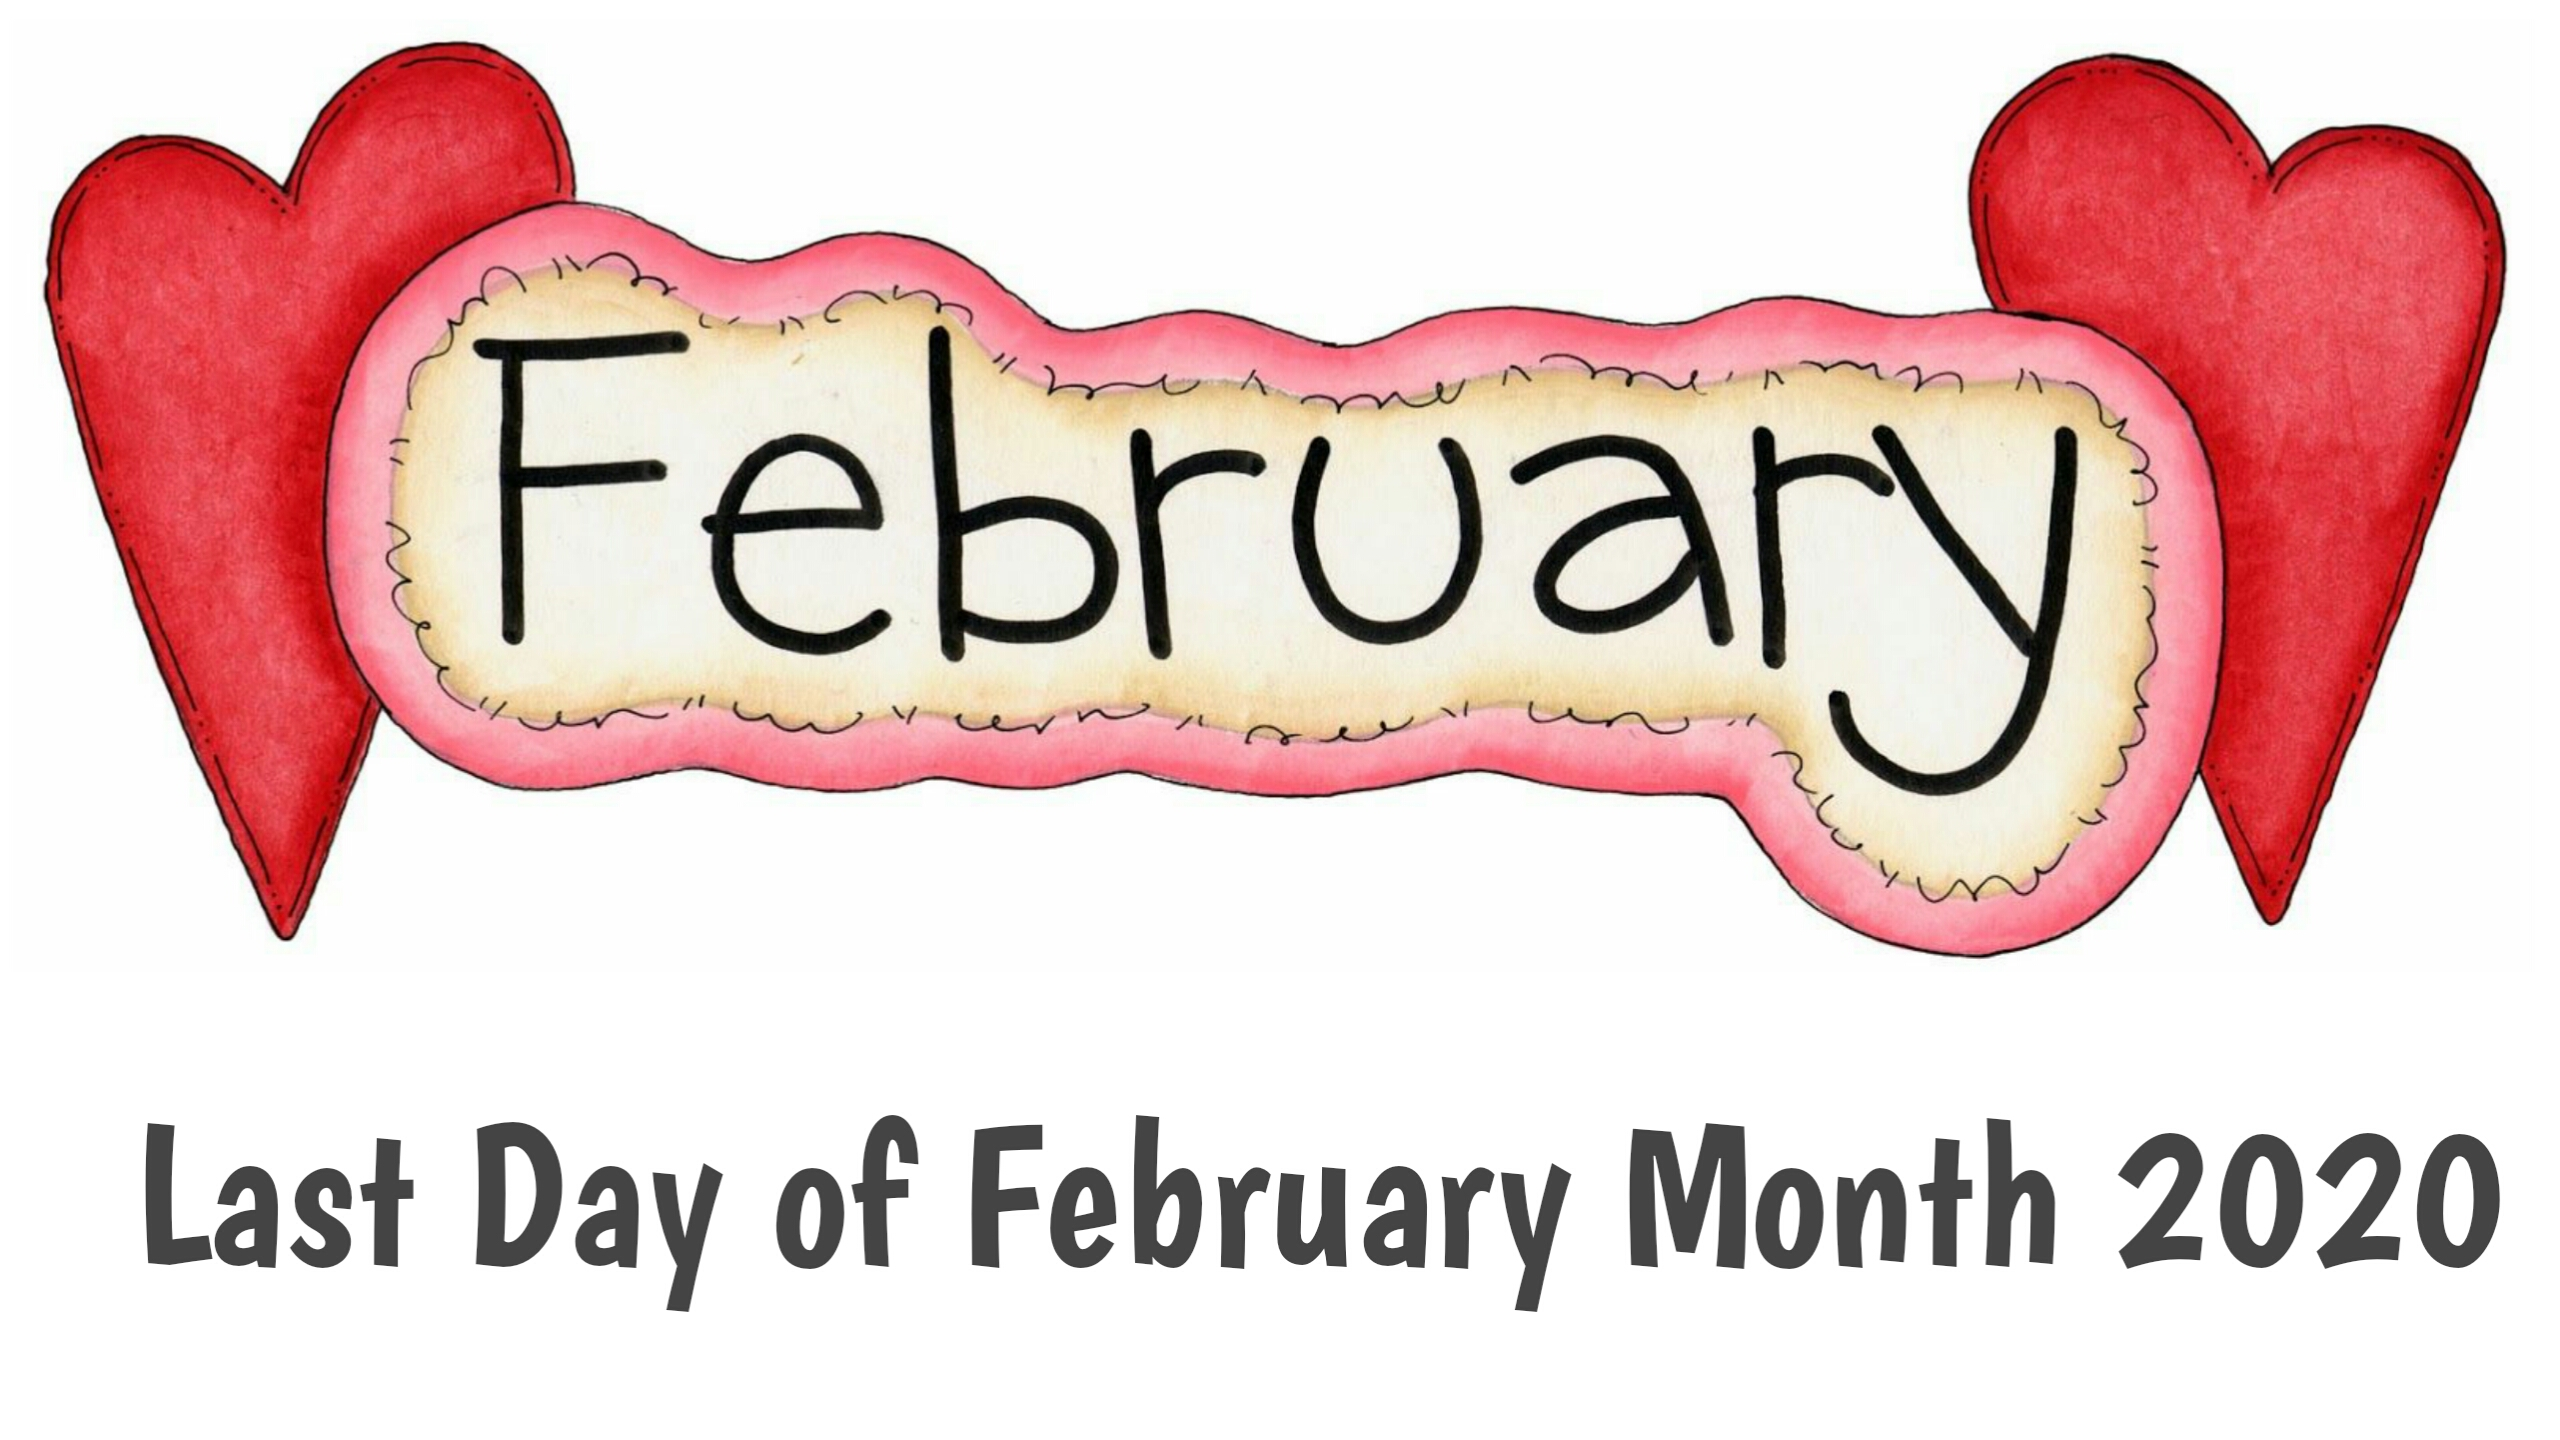 Today Last Day of February Month 2020